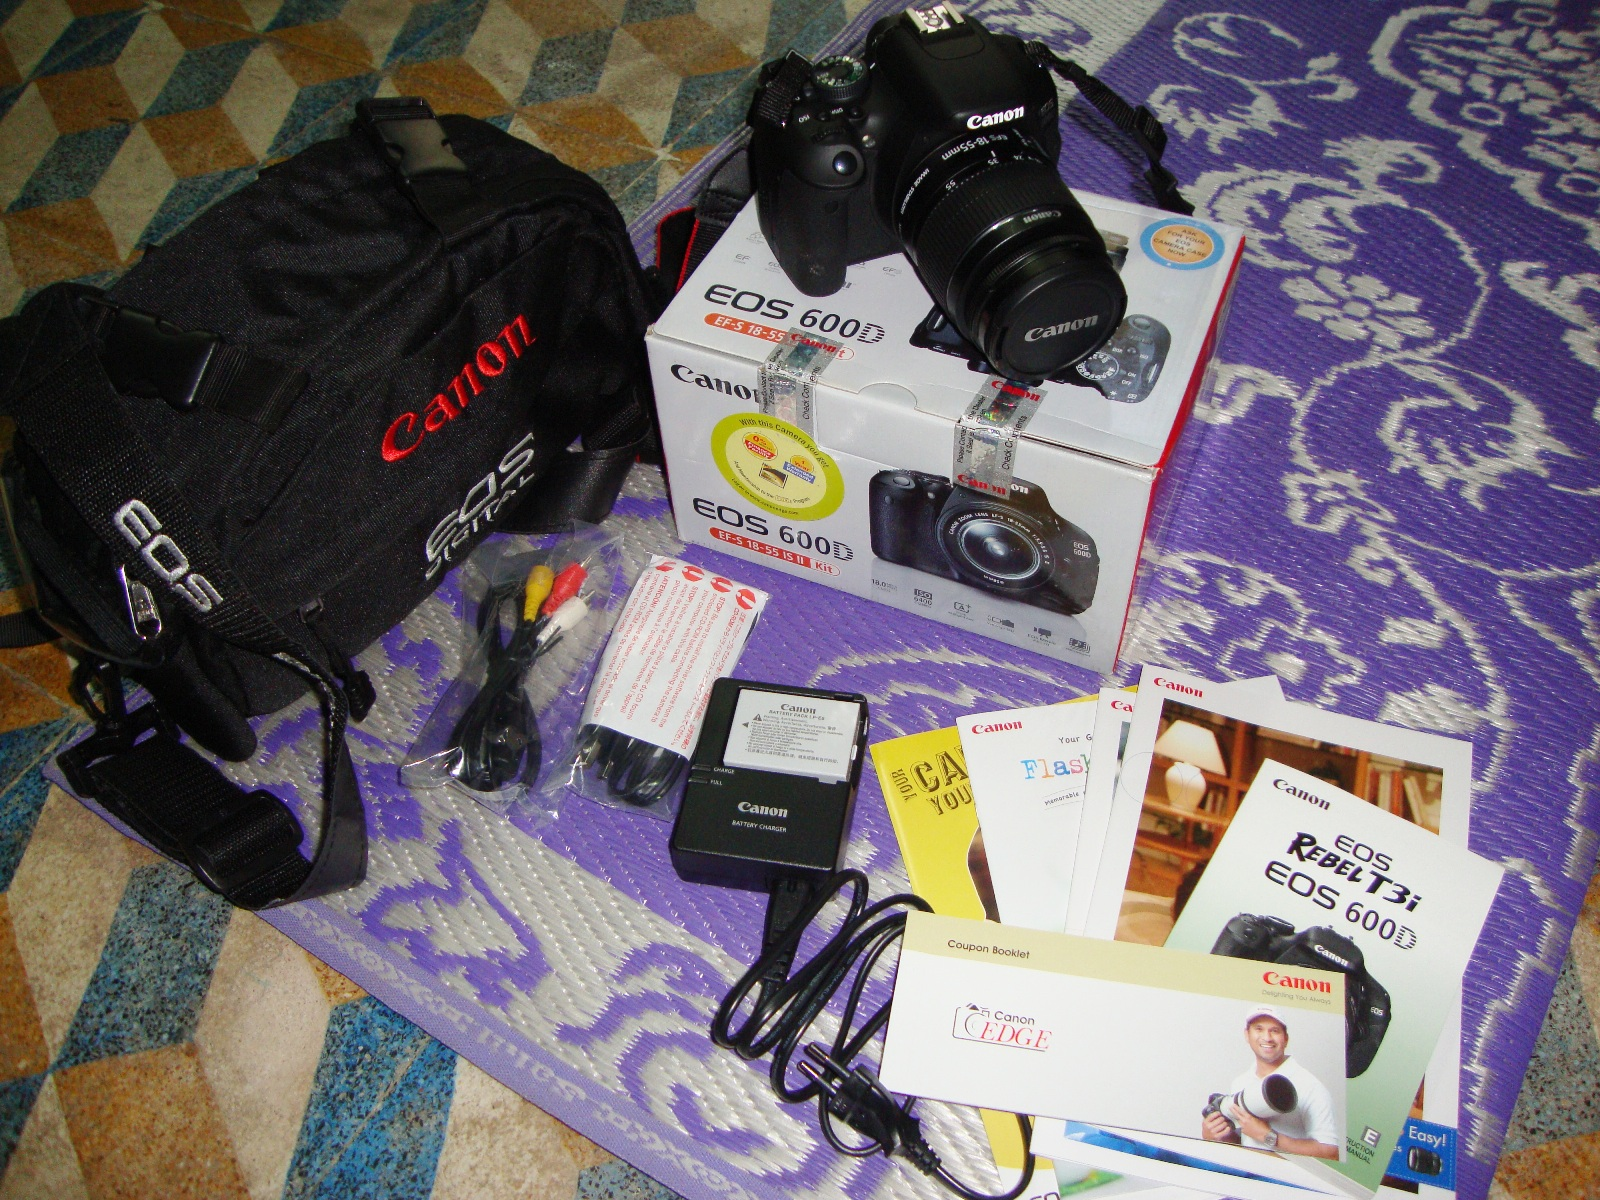 File:Canon EOS 600D Kit I Sales Package jpg - Wikipedia